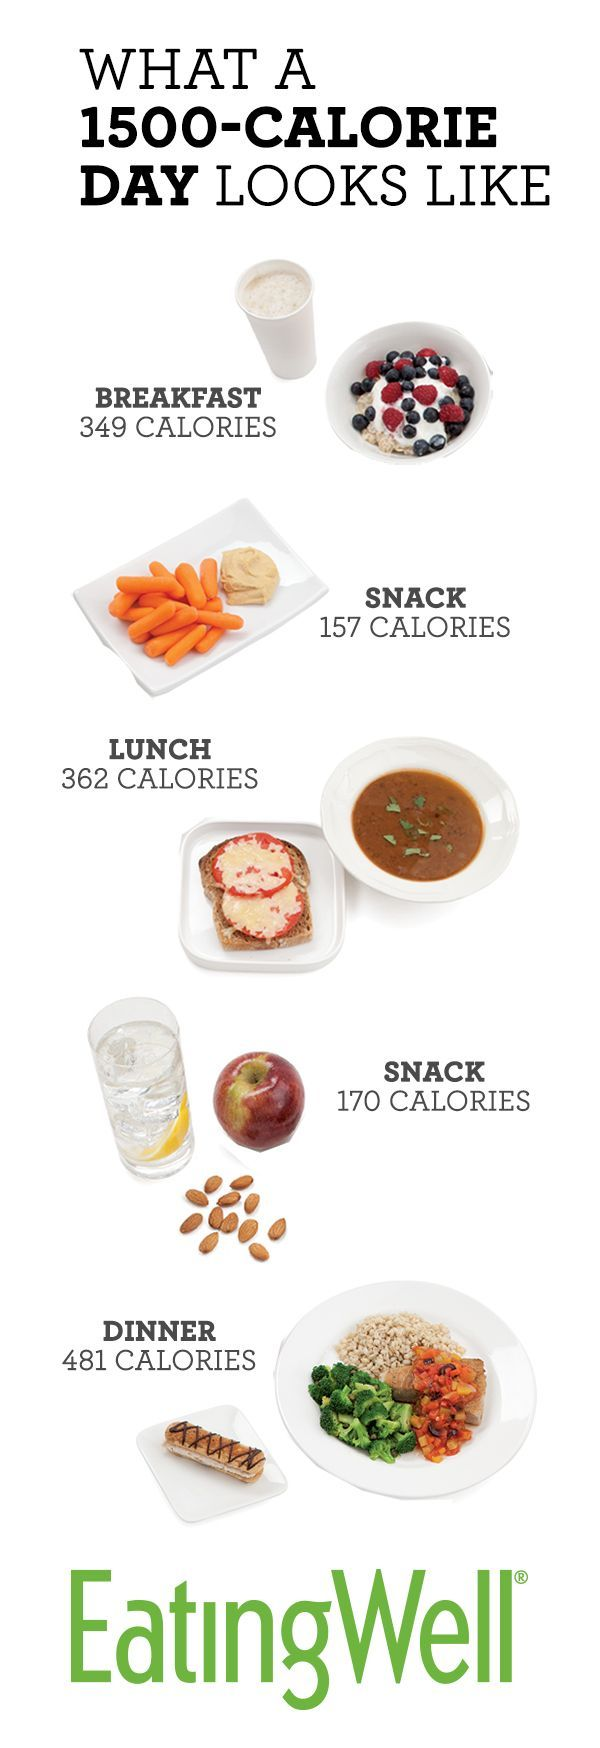 lose weight on a daily diet of 1,500 calories @beglamrs